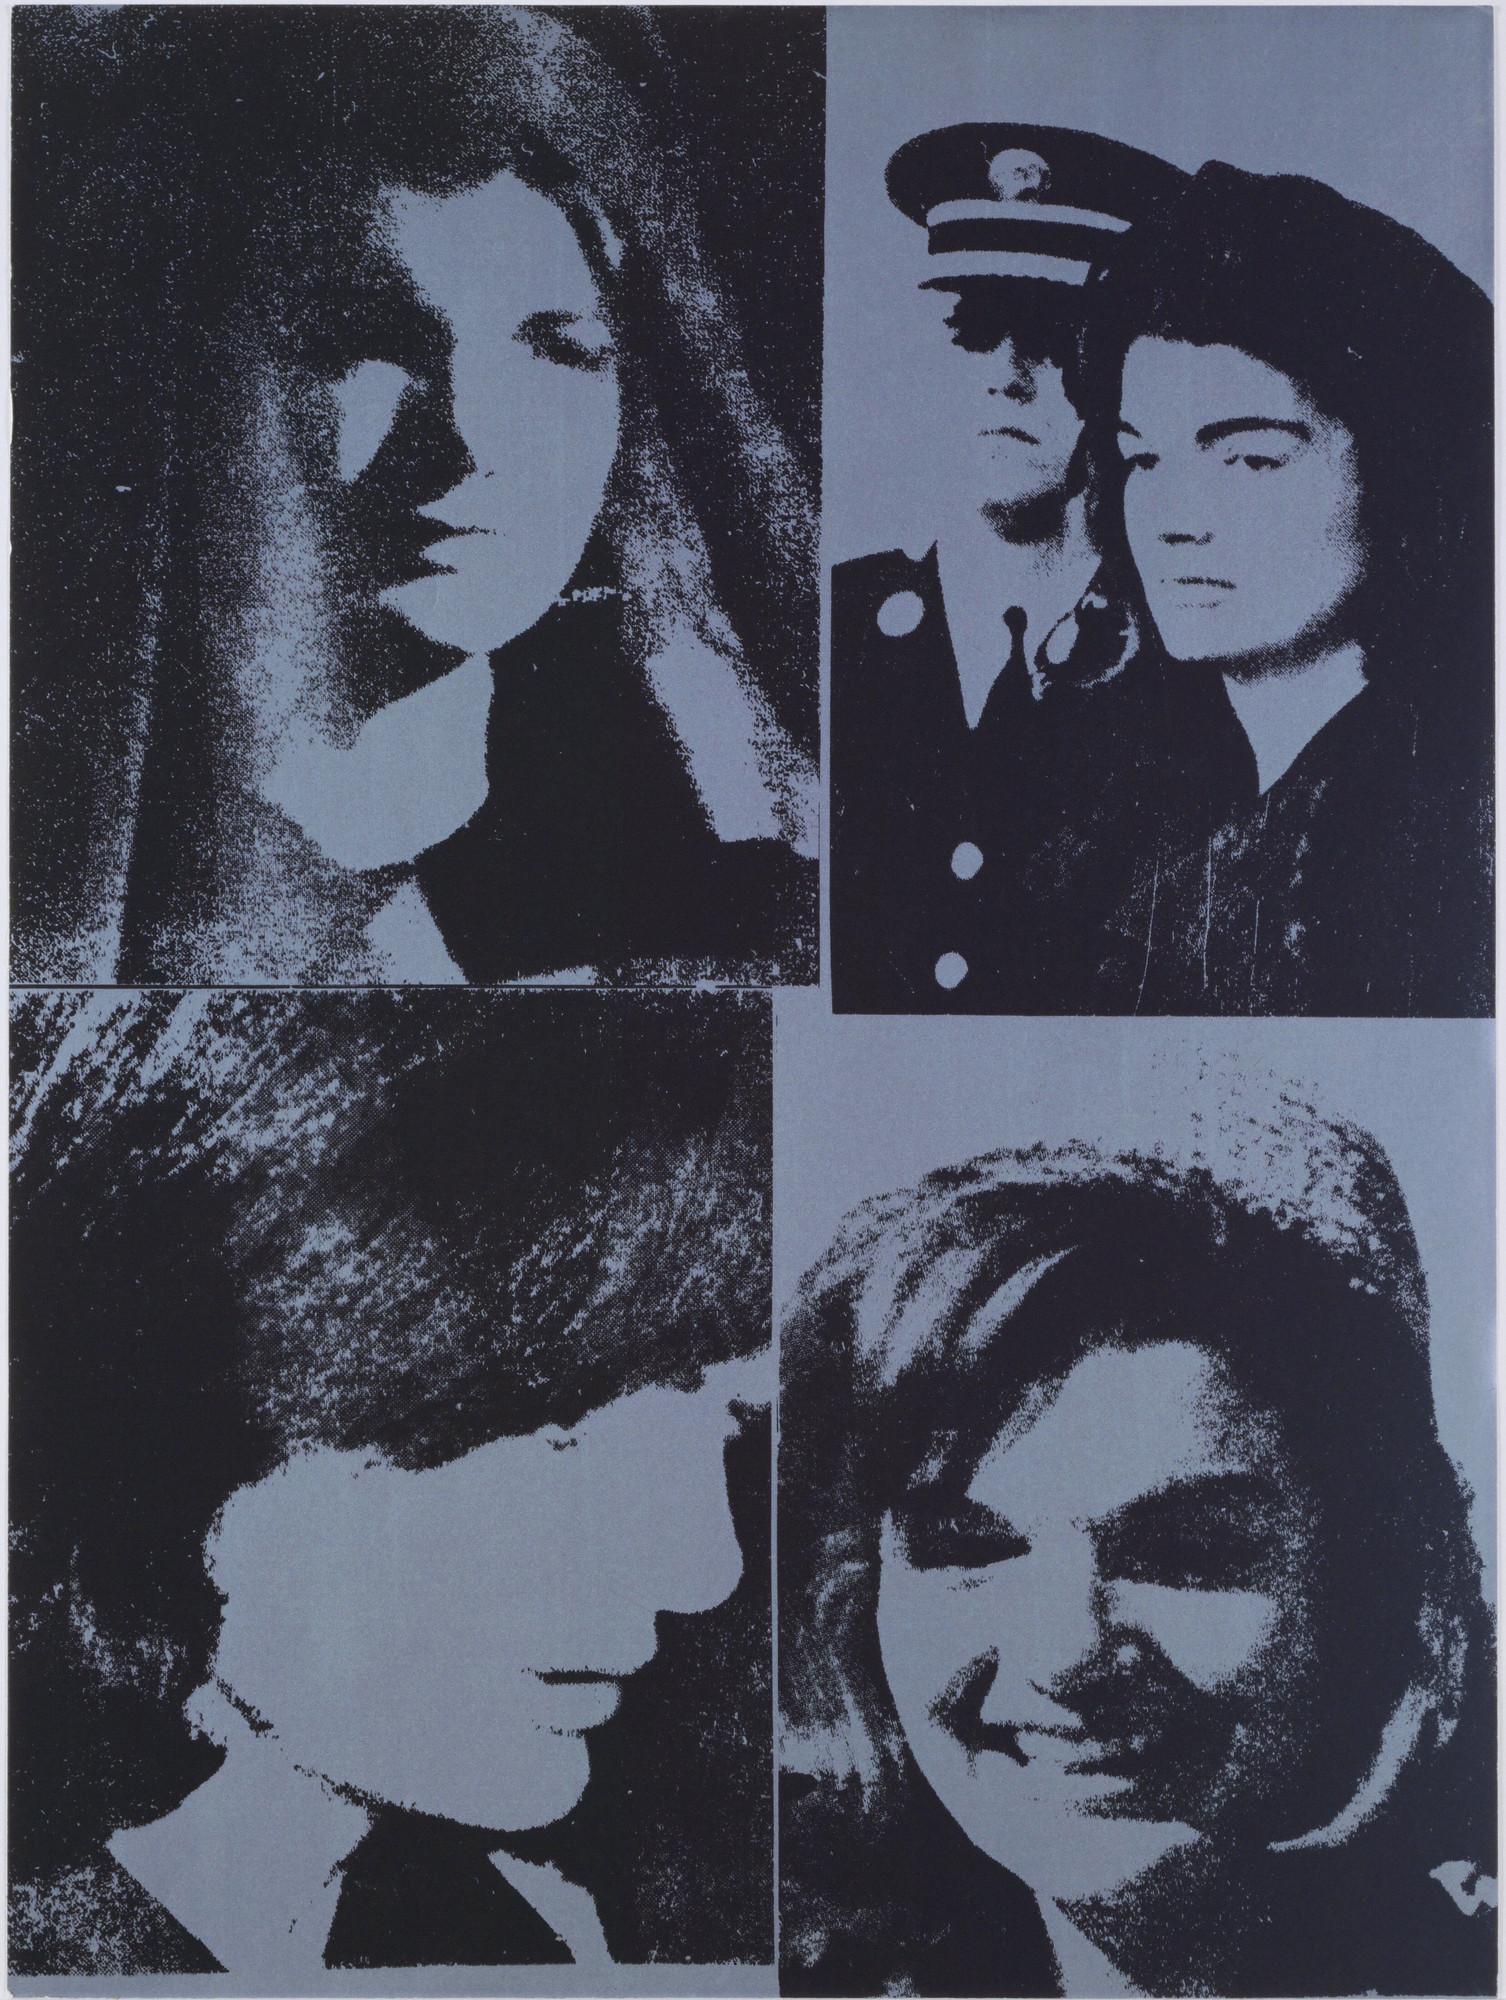 Andy Warhol. Jacqueline Kennedy III from 11 Pop Artists, Volume III. 1965, published 1966